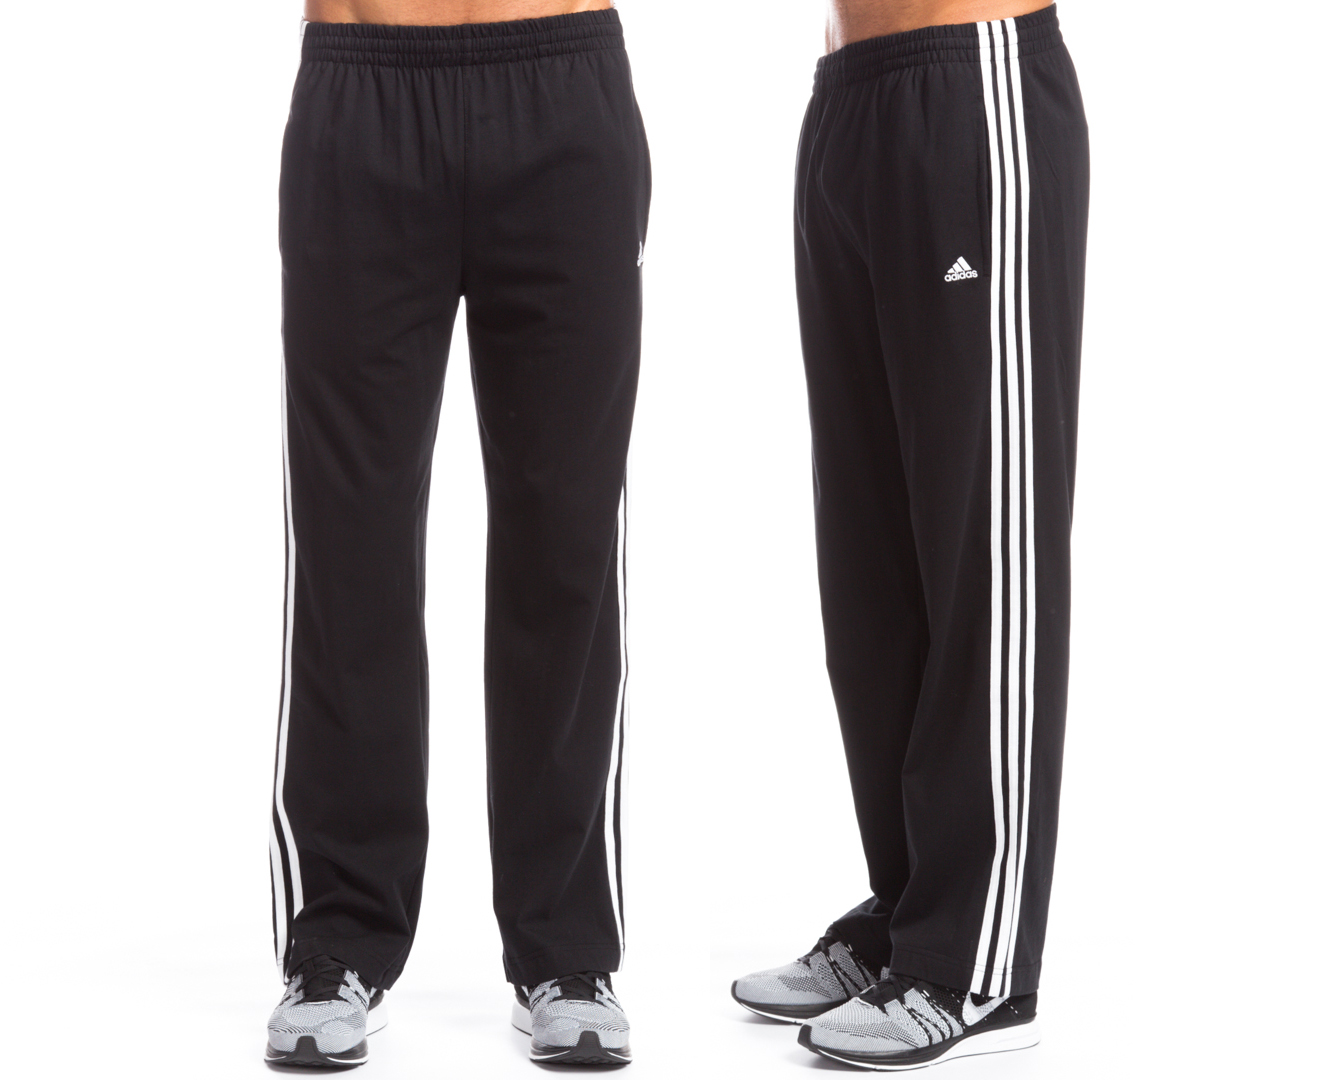 Image result for adidas 3 stripe pants